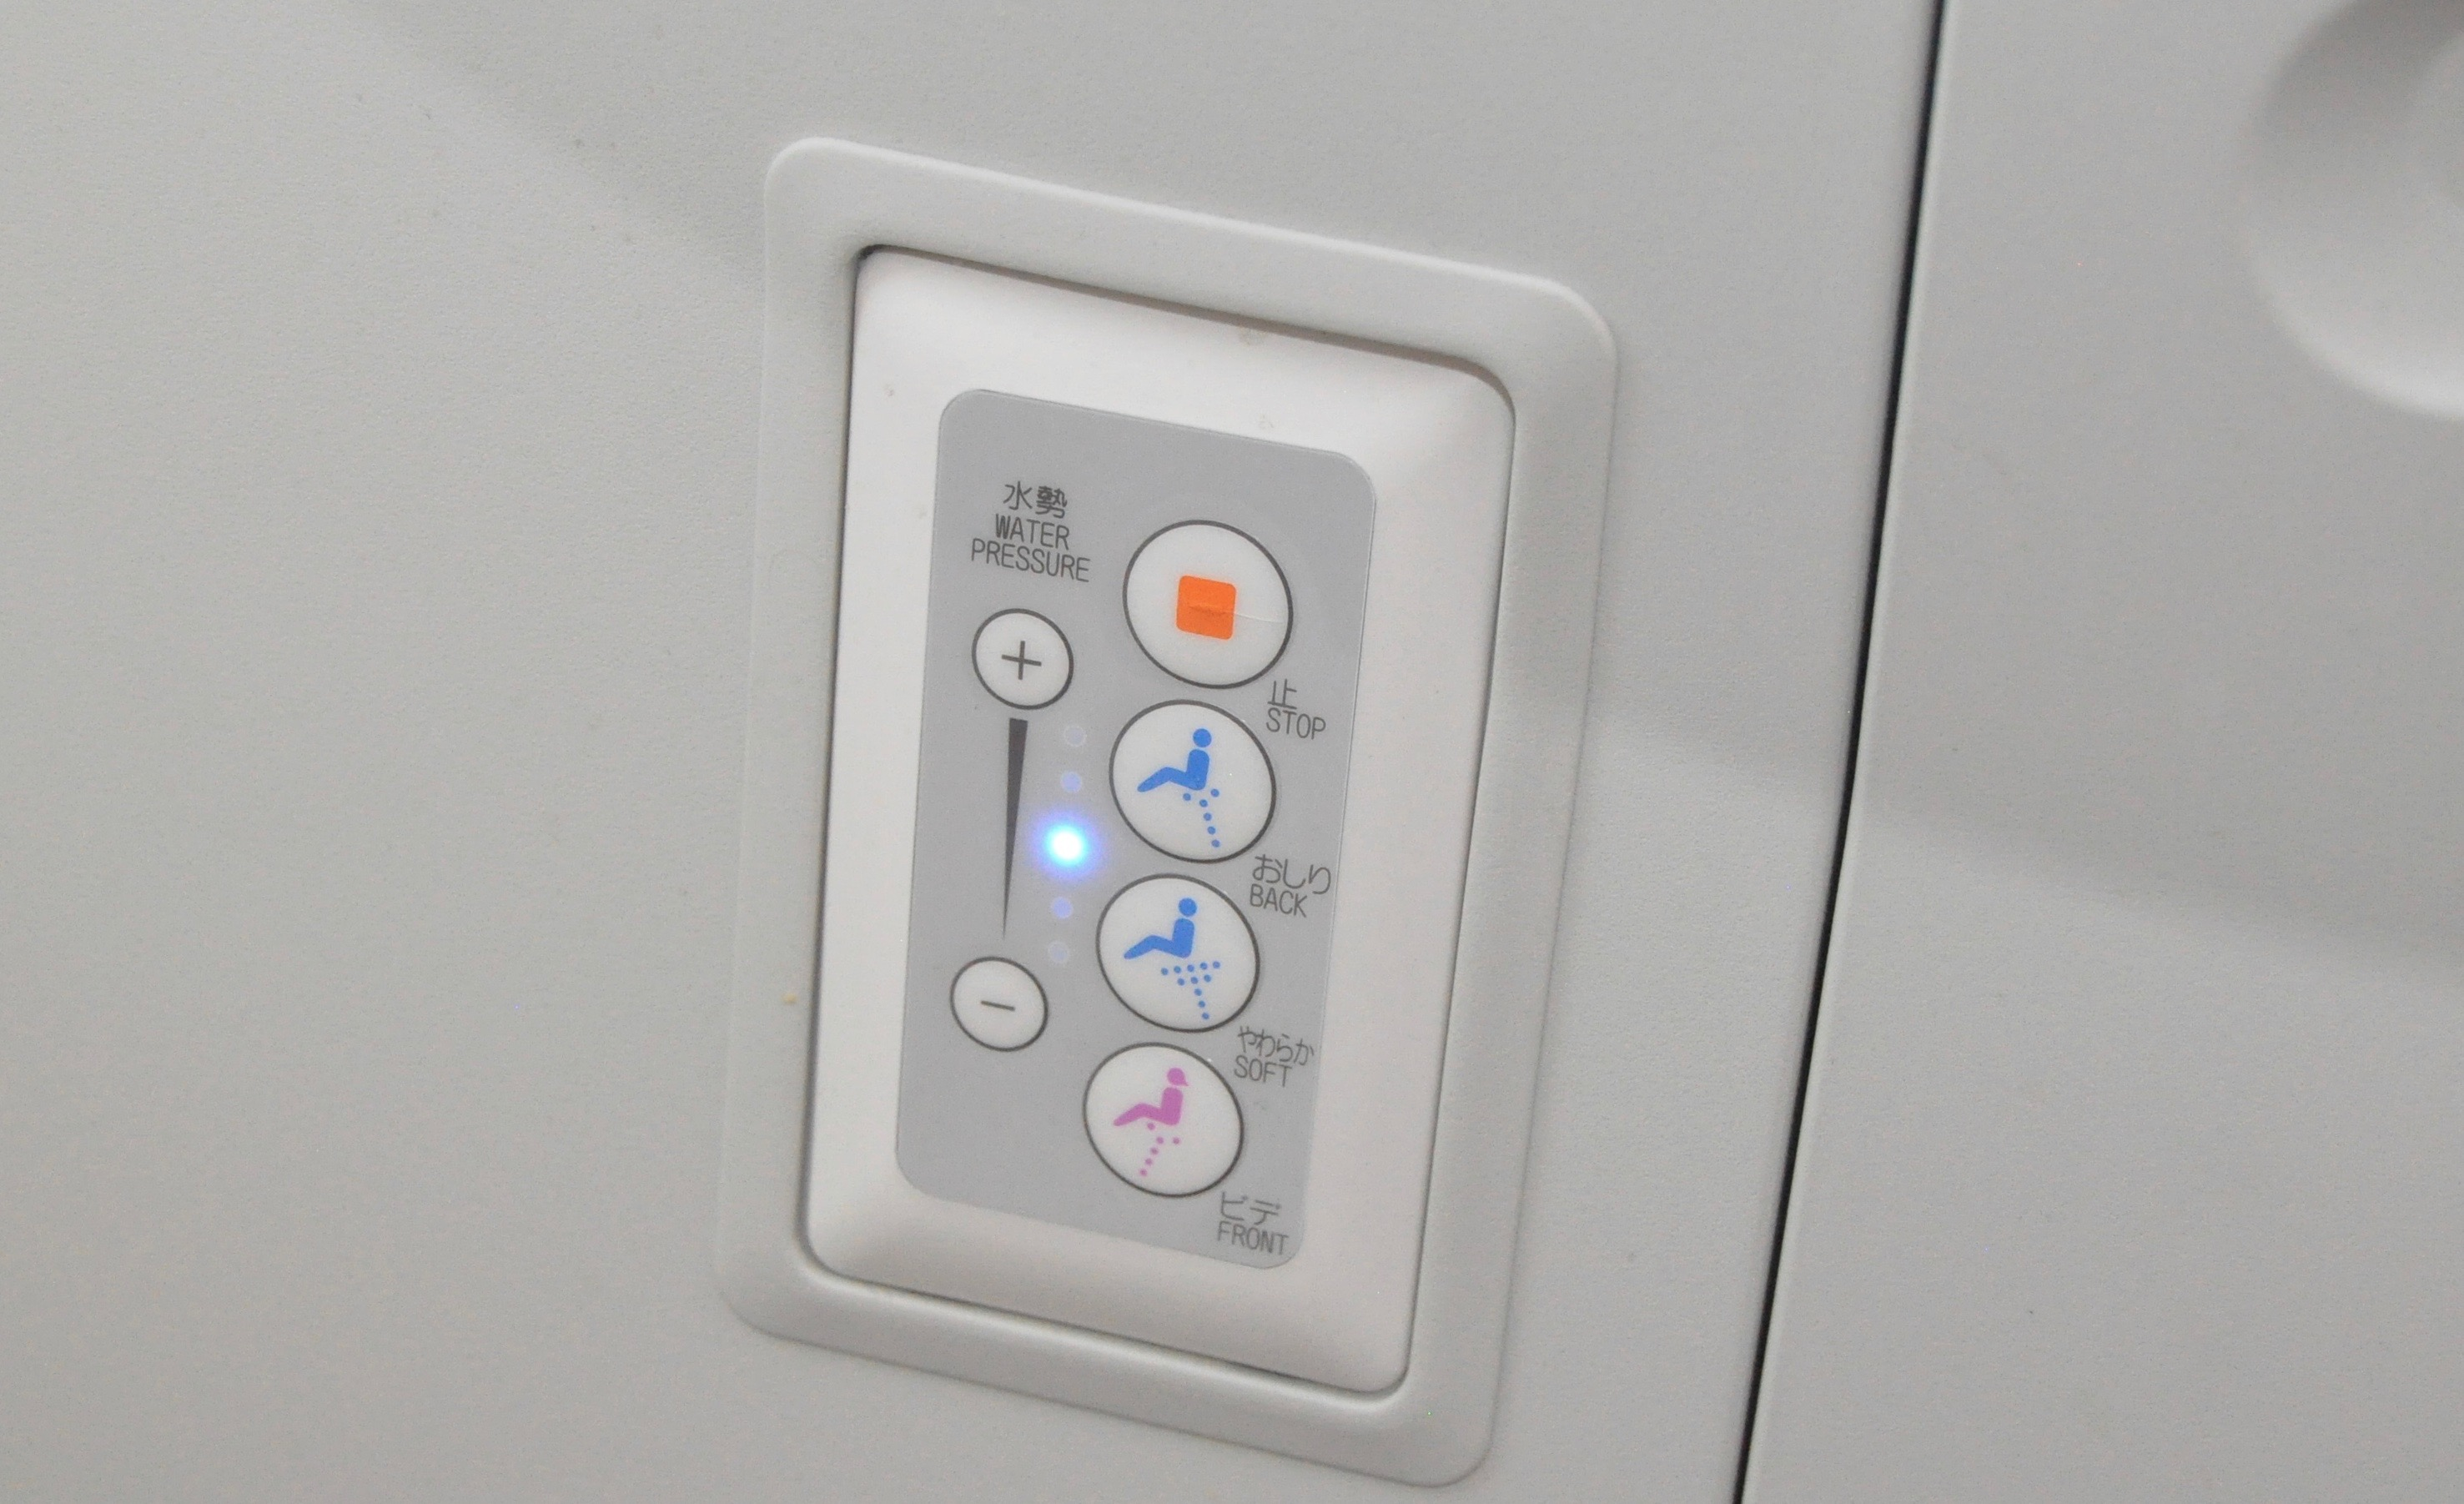 Japanese Toilet Industry To Simplify Controls For